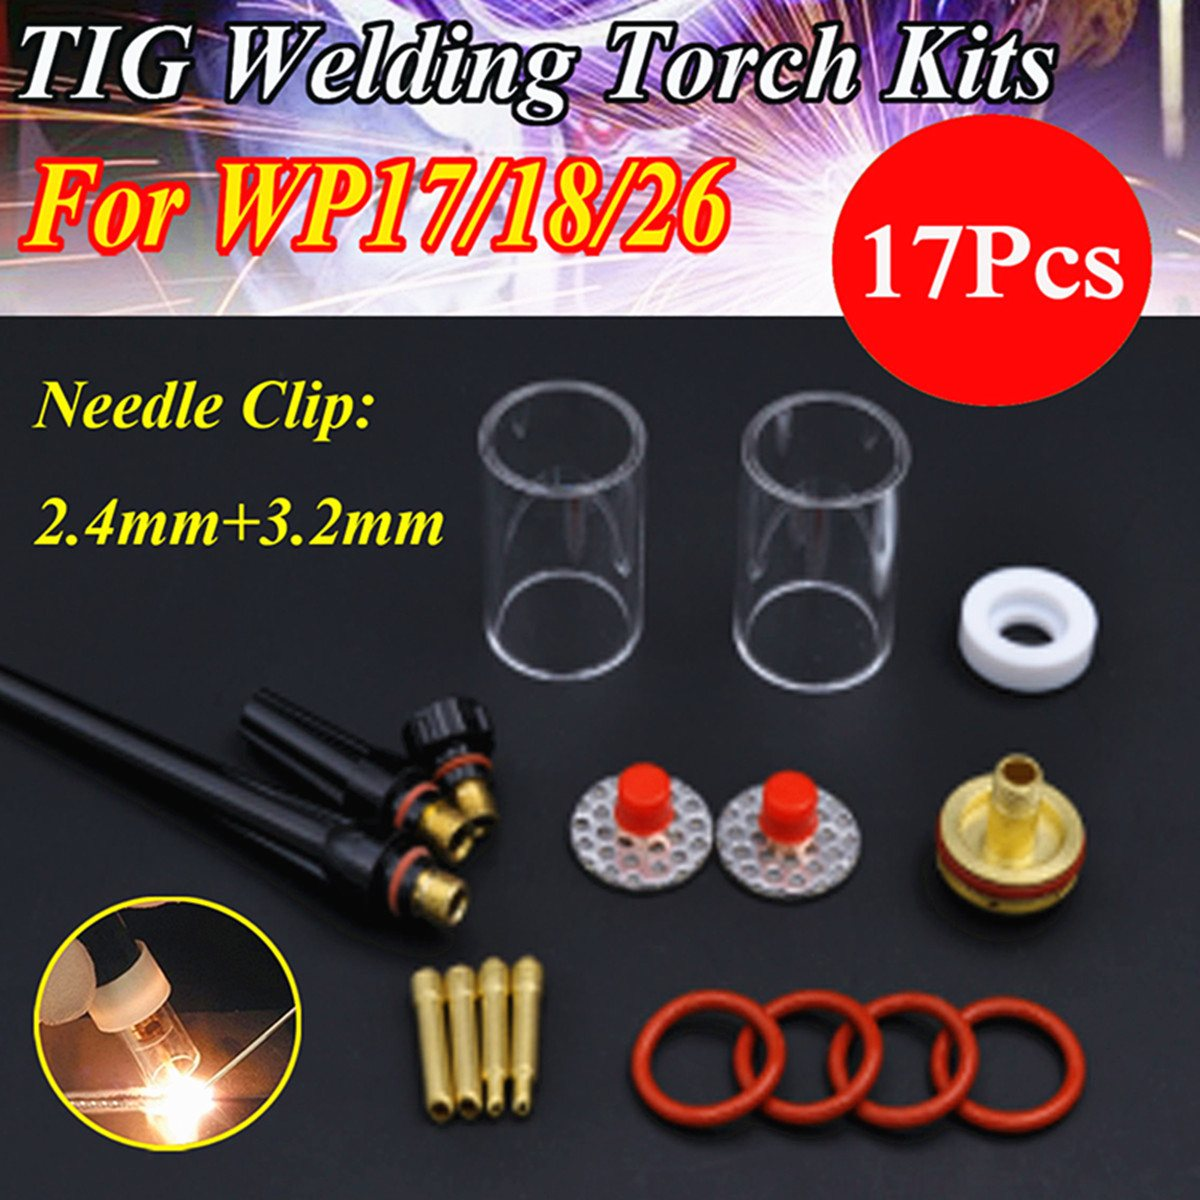 Hot Sale 17PCS TIG Welding Torch Gas Lens Pyrex Glass Cup Stubby Collet FOR WP-17/18/26 Series Welding Accessories wp 17f sr 17f tig welding torch complete 20feet 6meter soldering iron flexible